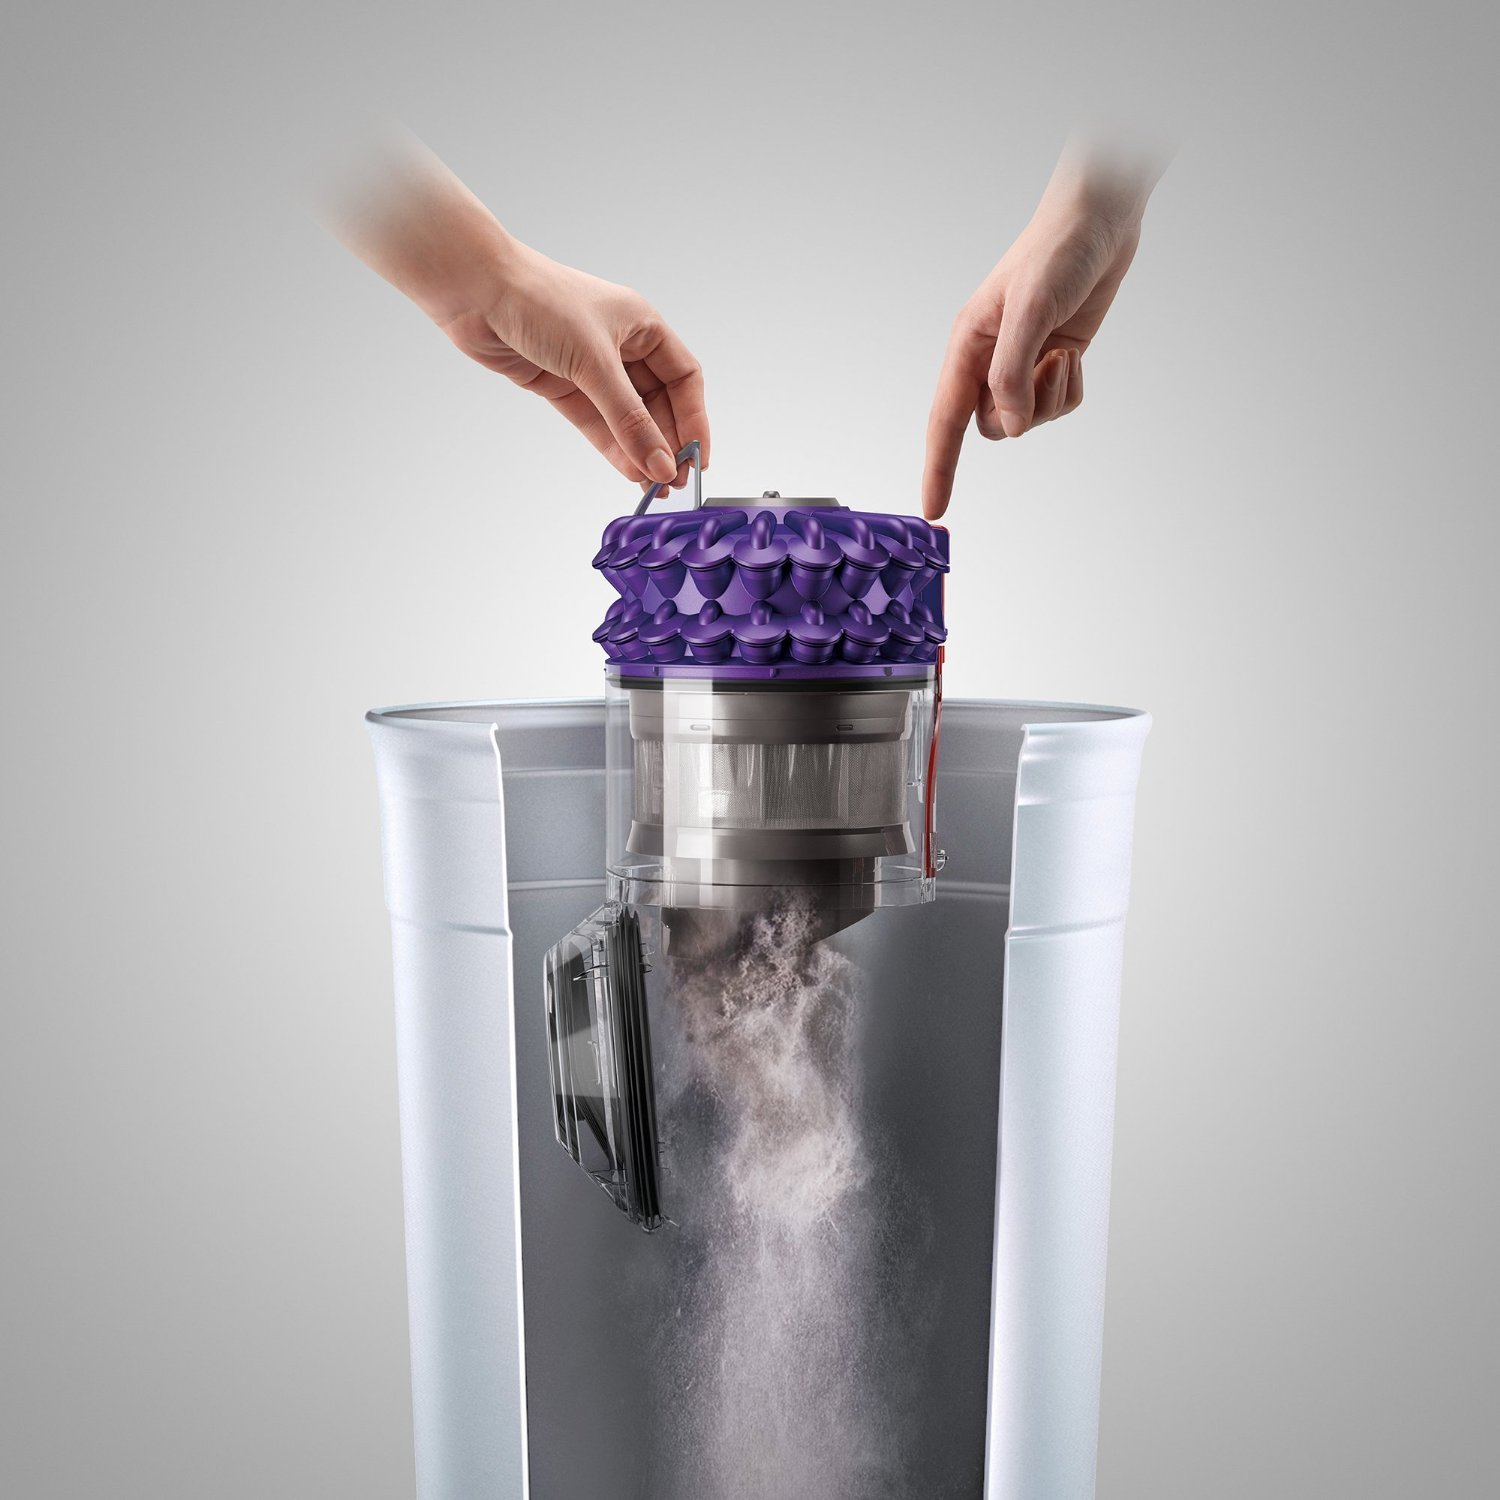 Dyson CY18 Cinetic Animal Canister Vacuum, Purple/Iron (Certified Refurbished) by Dyson (Image #5)